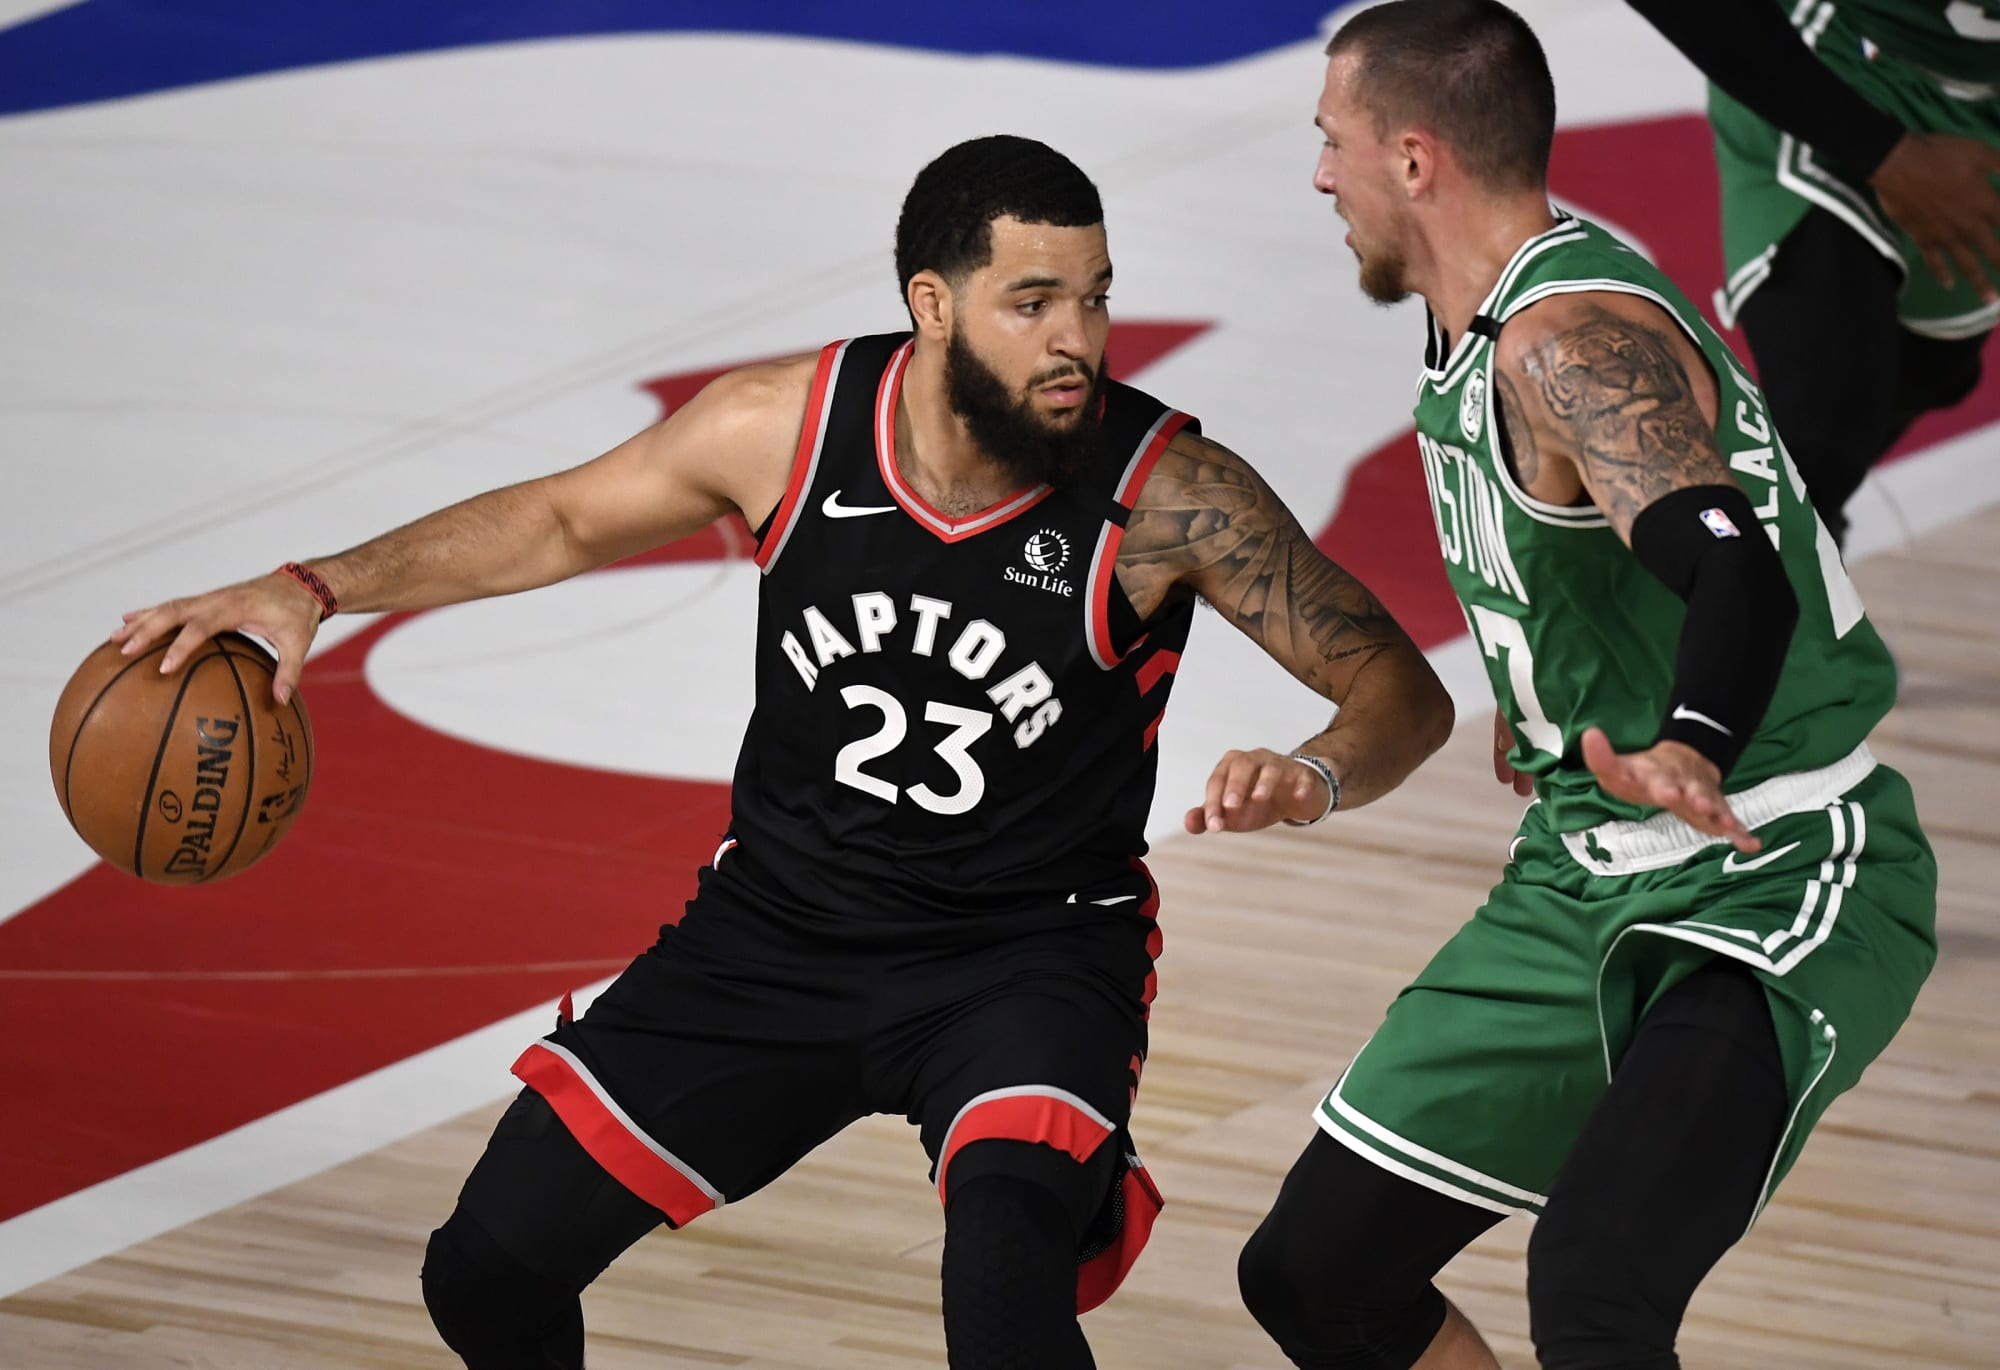 Toronto Raptors: Where will the Raptors play in 2020/21?